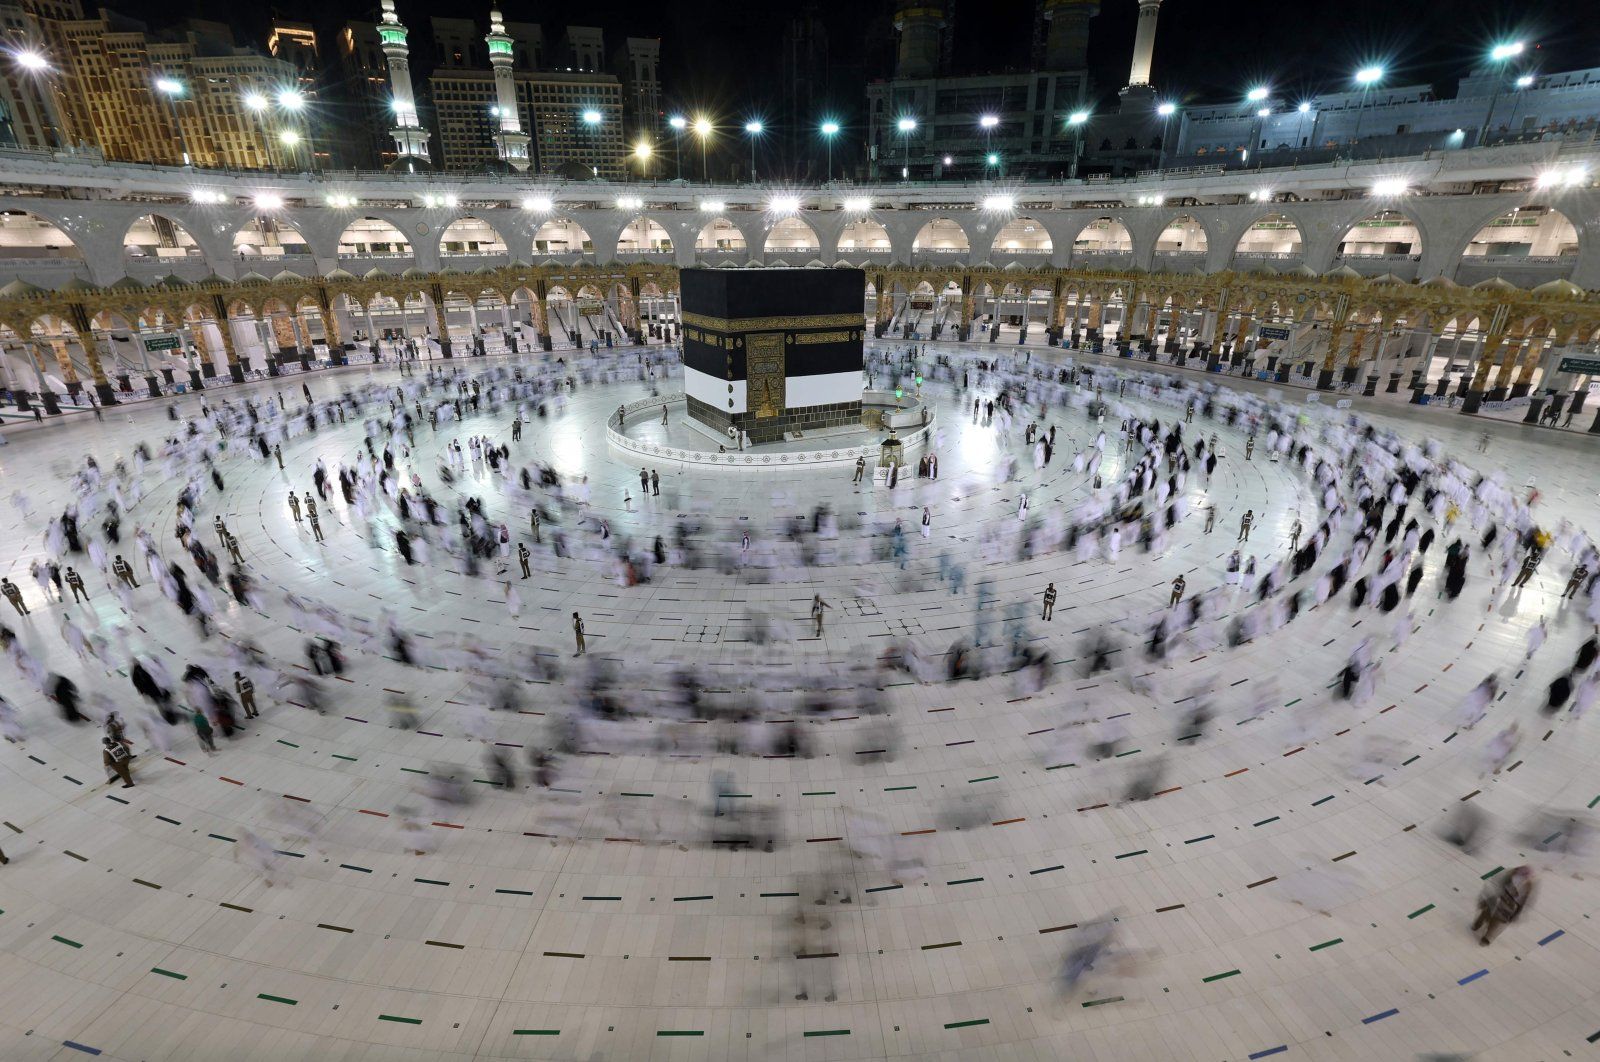 A long exposure photograph shows Muslim pilgrims circumambulating around the Kaaba, Islam's holiest shrine, at the Grand Mosque in the holy Saudi Arabian city of Mecca during the annual hajj pilgrimage, July 17, 2021. (AFP Photo)